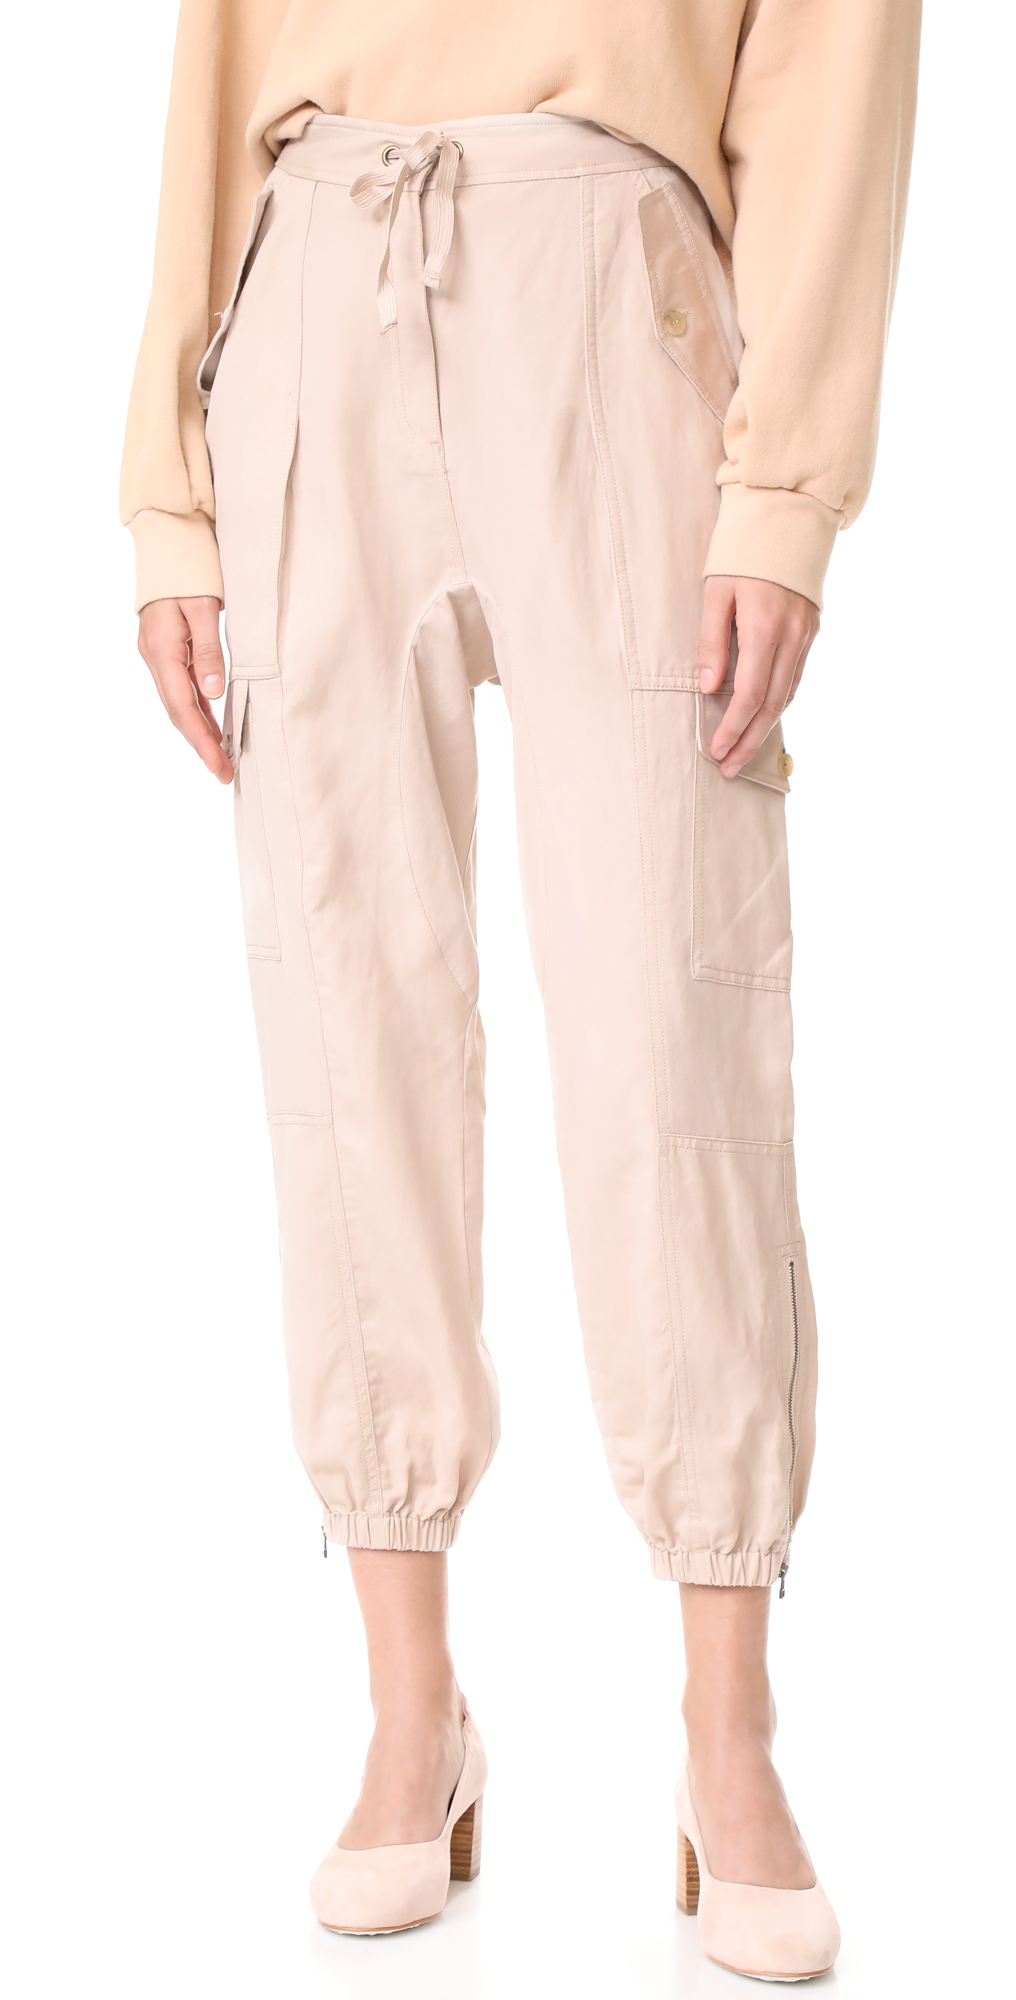 Edris Pants Ulla Johnson